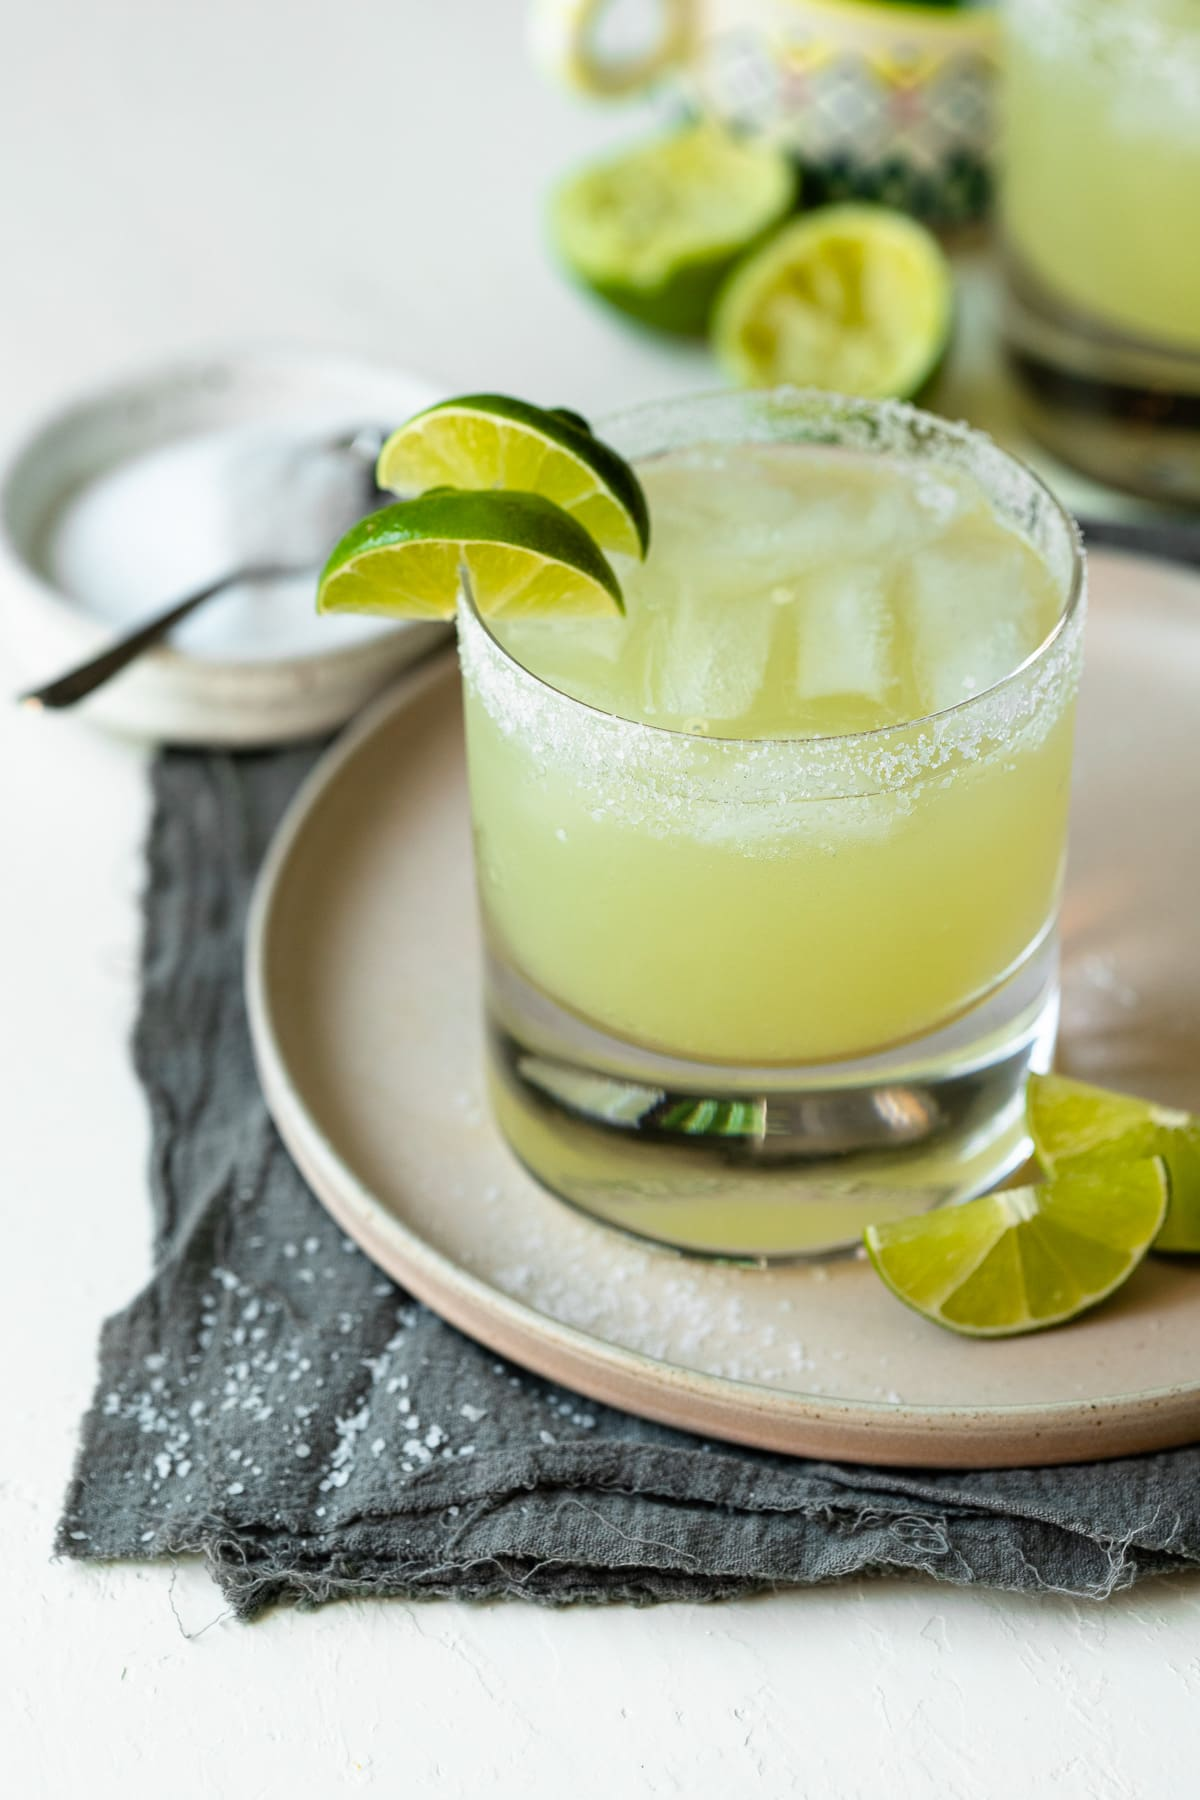 Two margaritas in lowball glasses, one garnished with lime wedges.